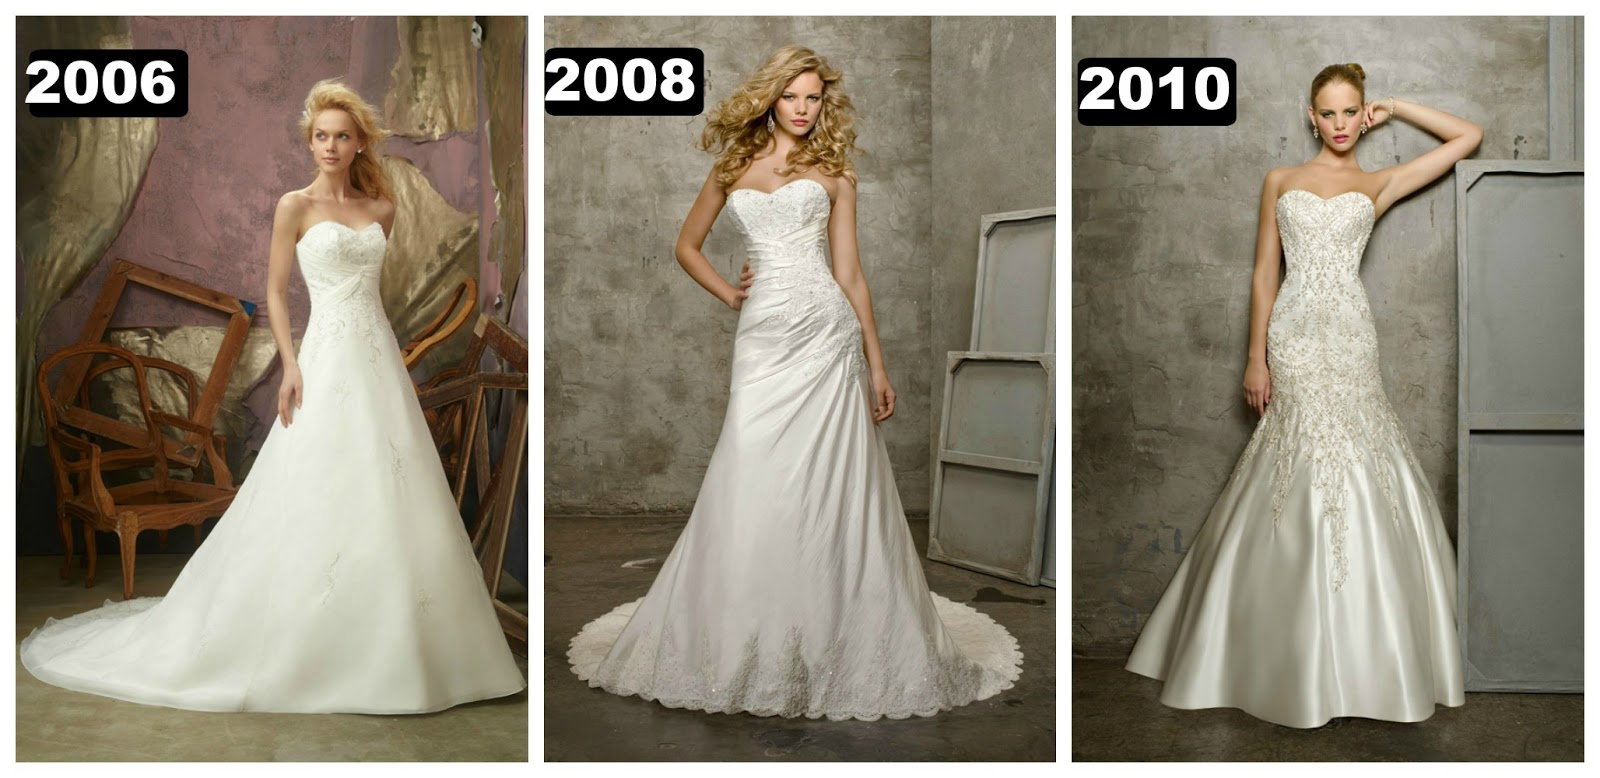 Brides of America Online Store: Wedding Fashions Through ...